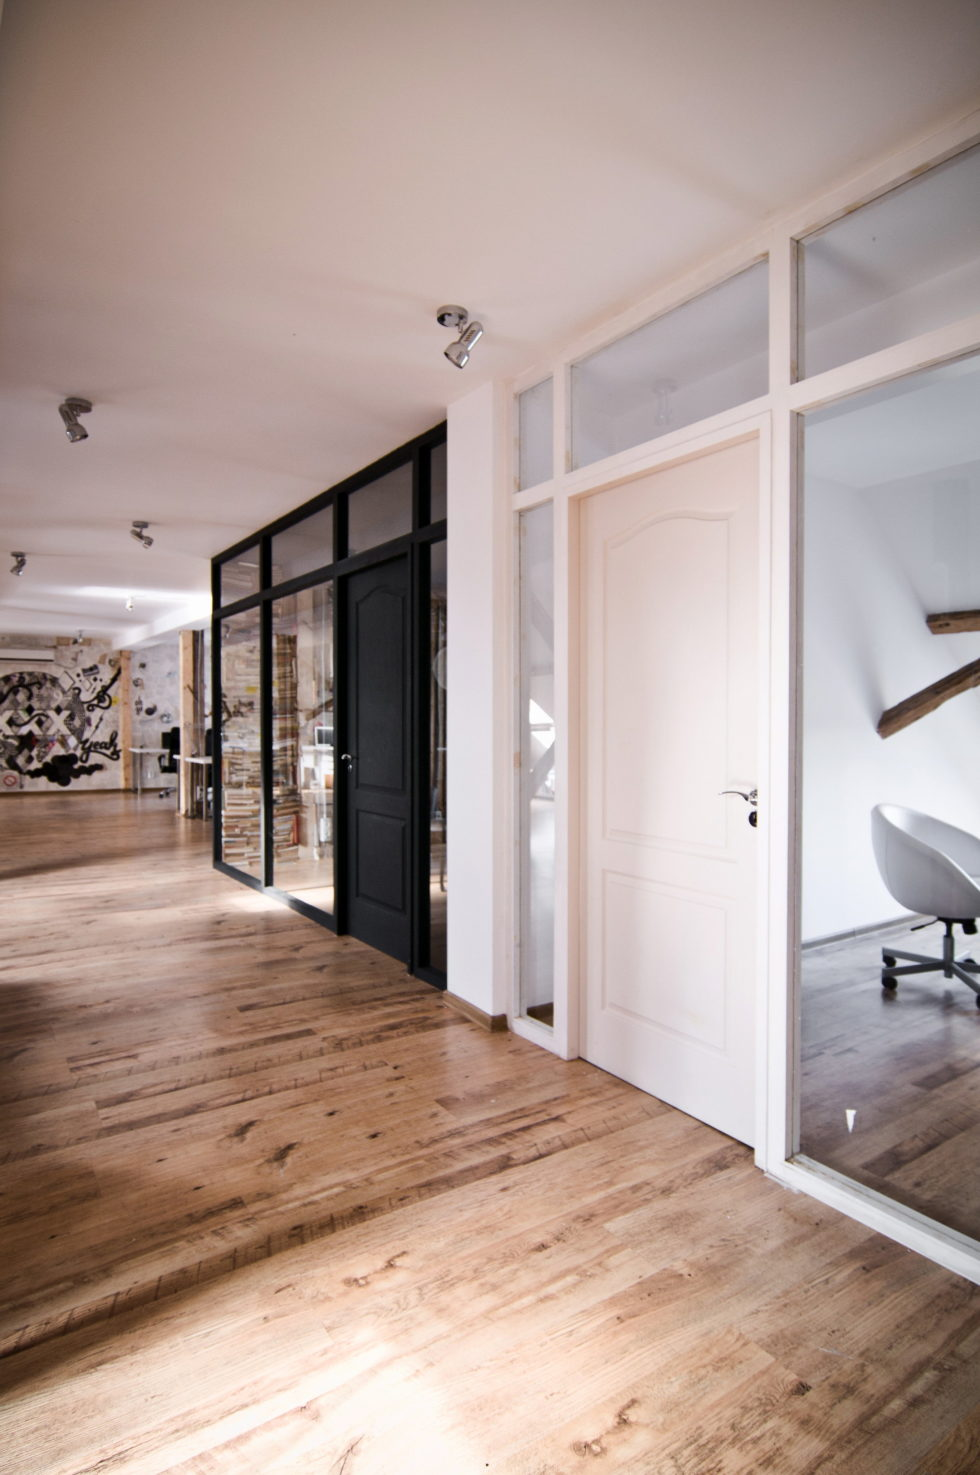 Design Of The X3 Studio Office In Timisoara (Romania) 6